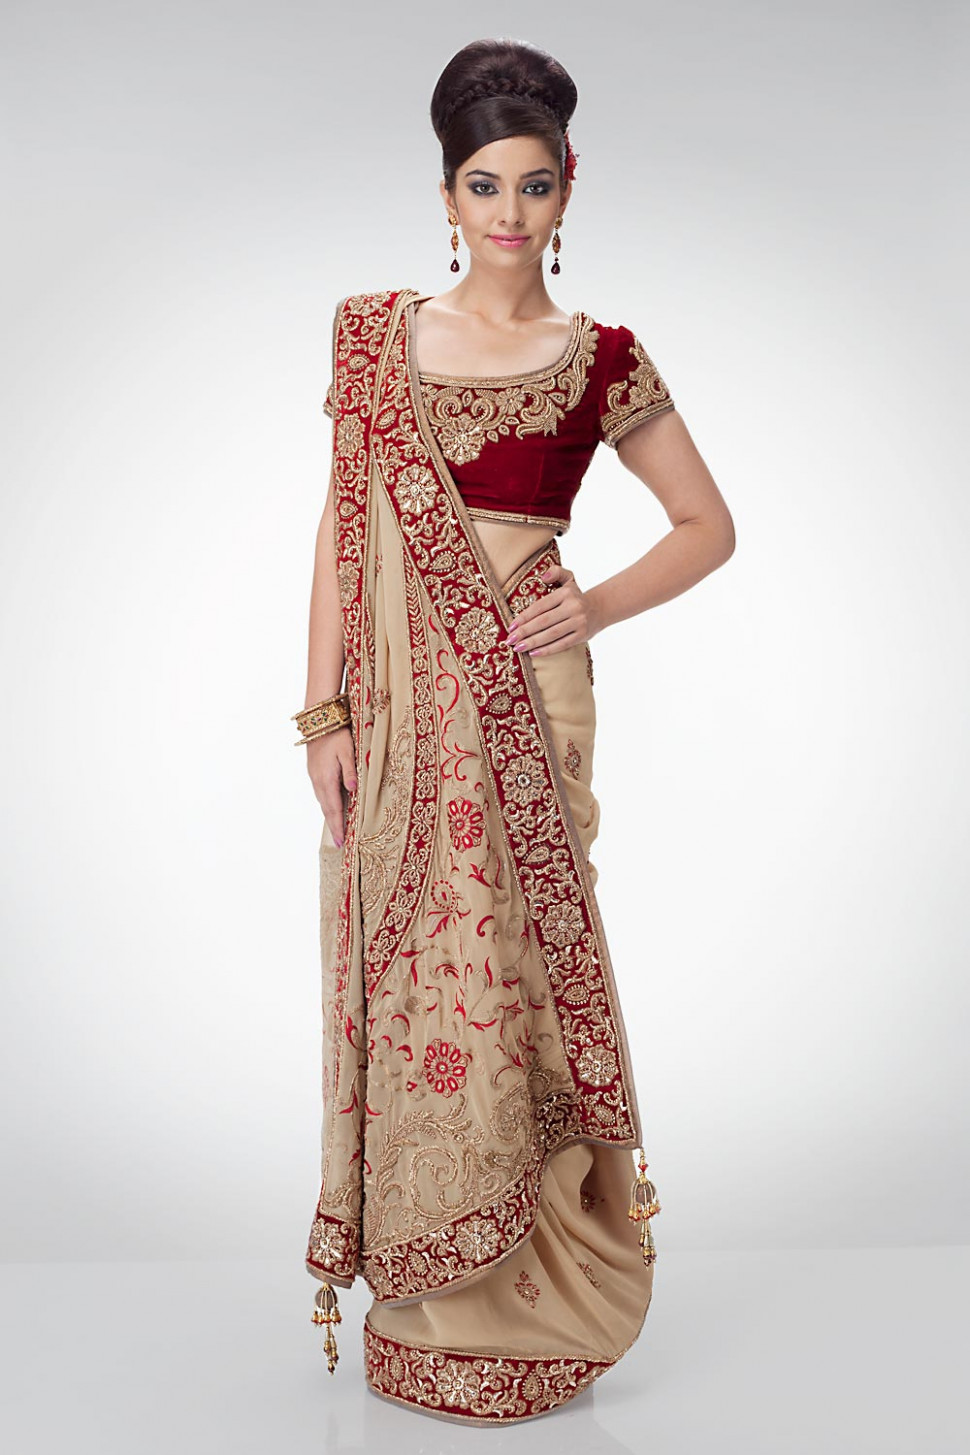 Bridal Sarees | Indian Bridal Sarees | Bridal Sarees for ...